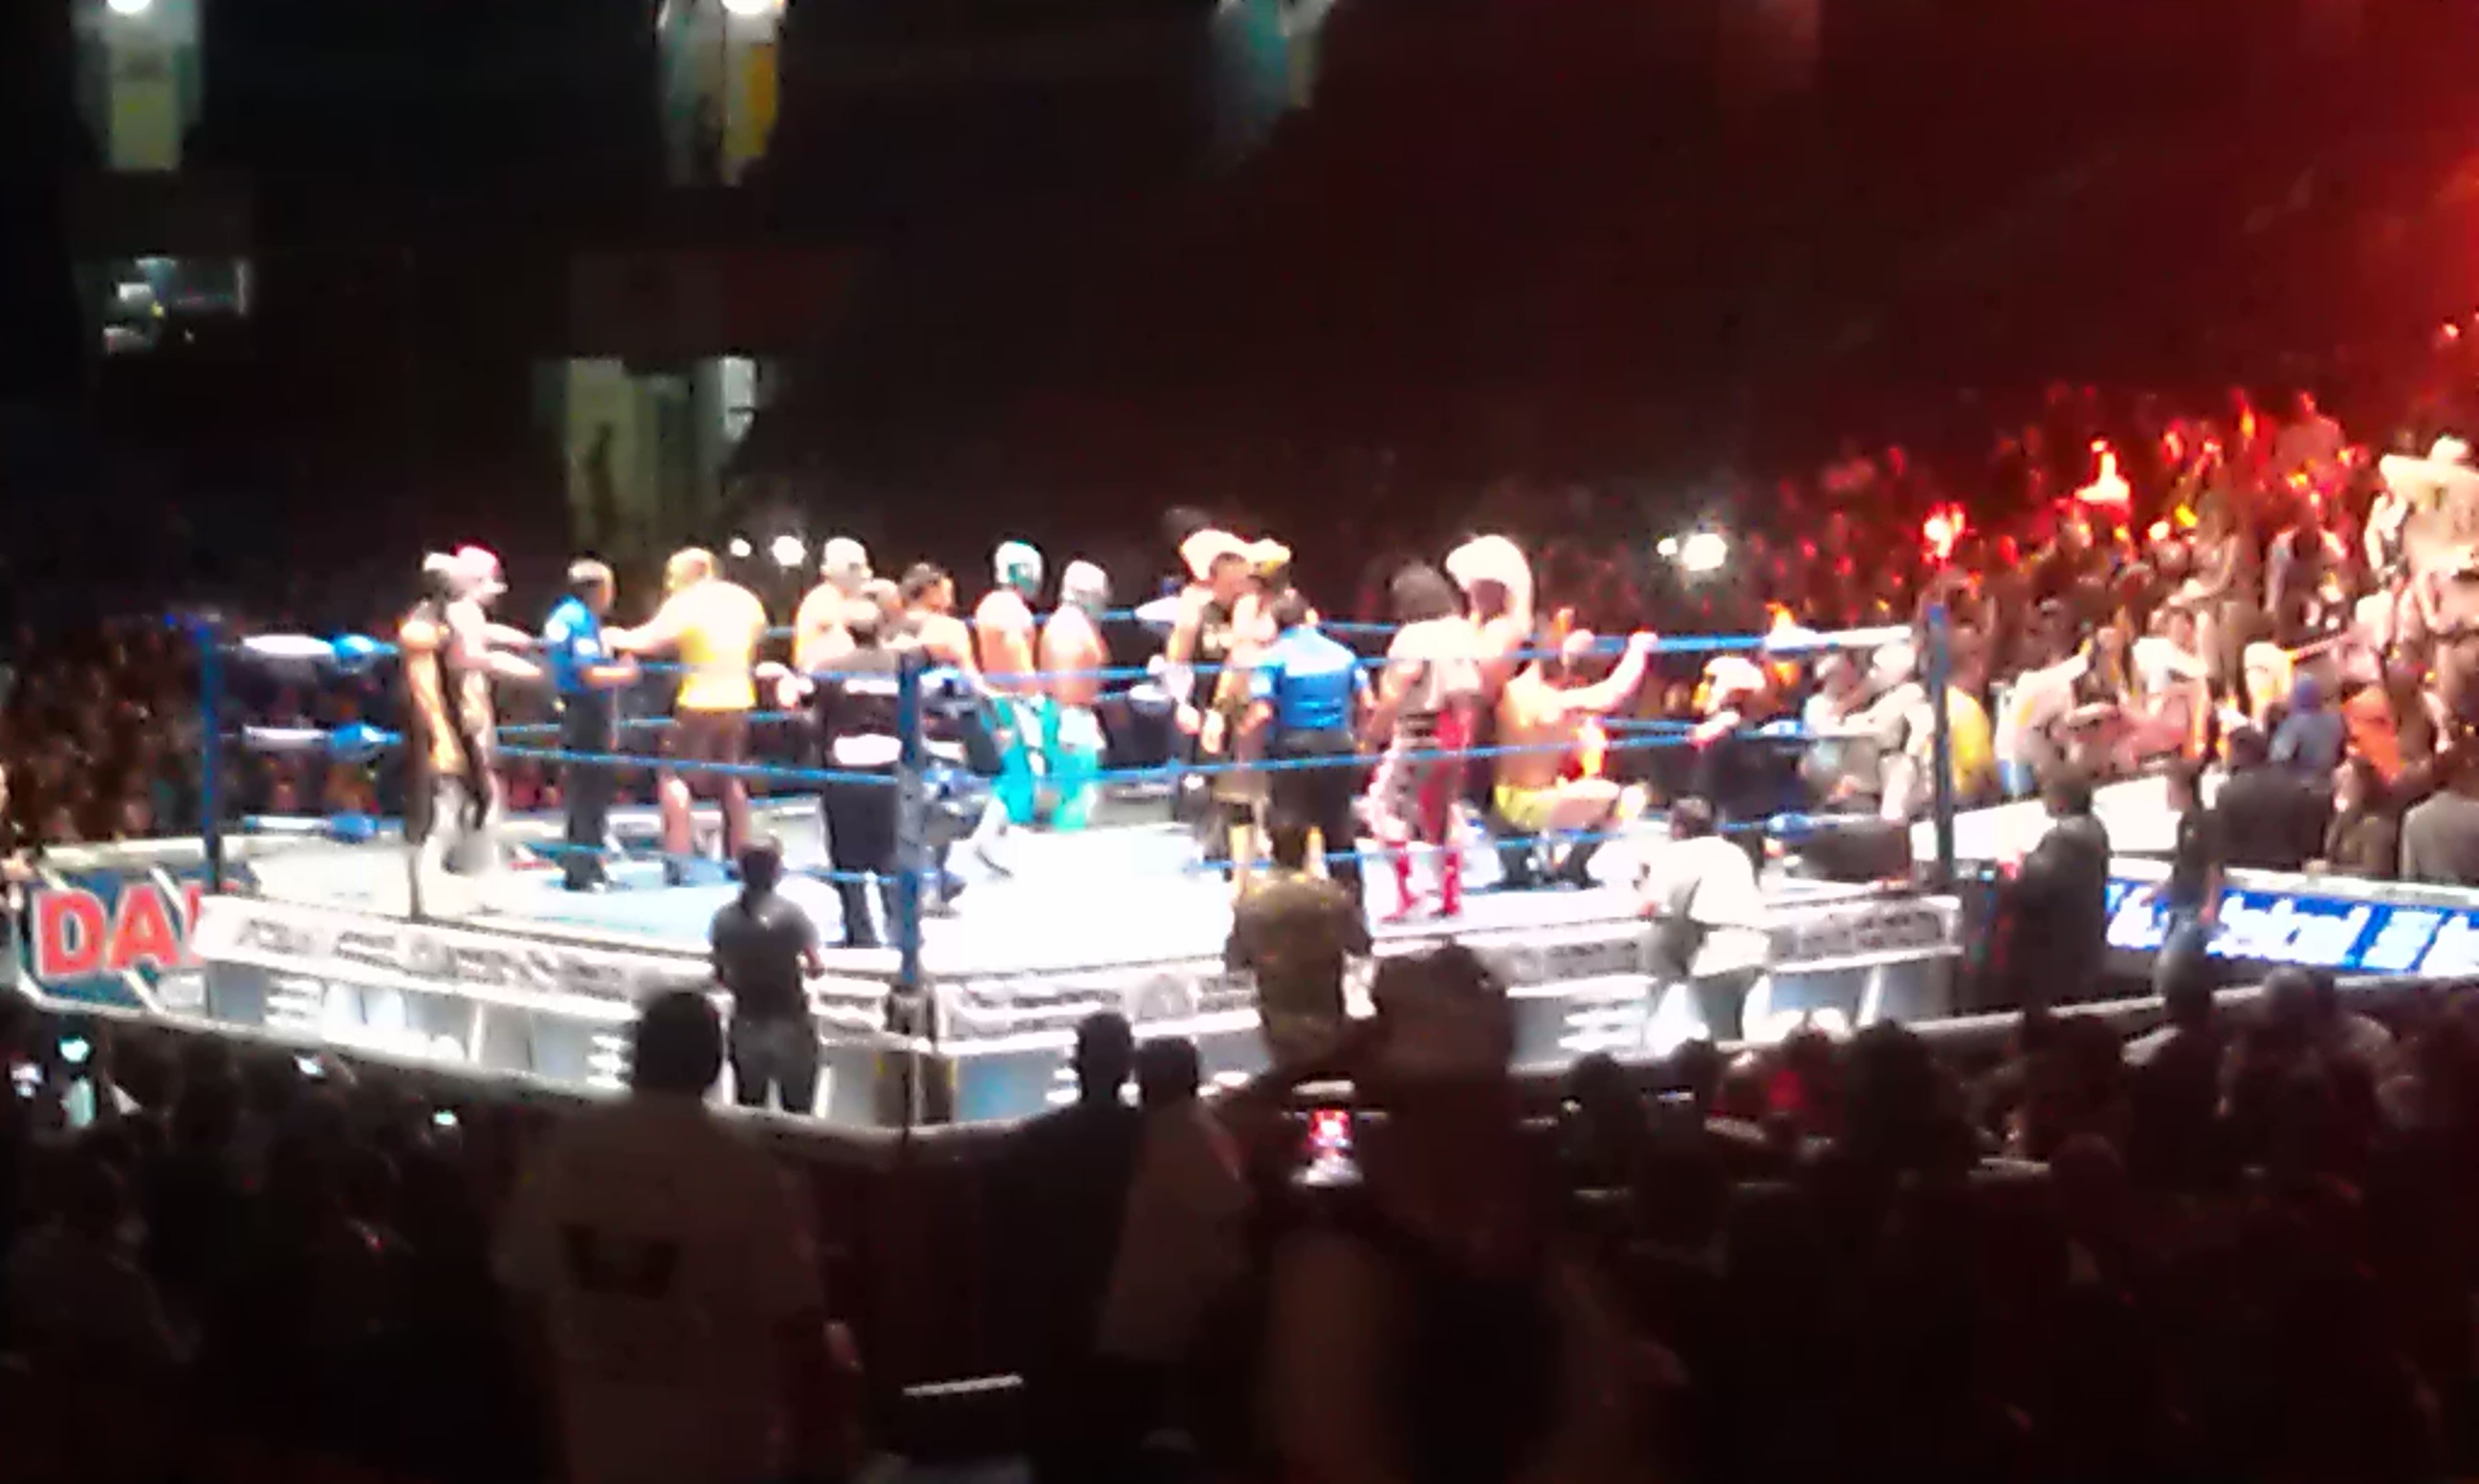 Lucha Libre Real Lucha Libre A Night At The Mexican Wrestling Wings Are